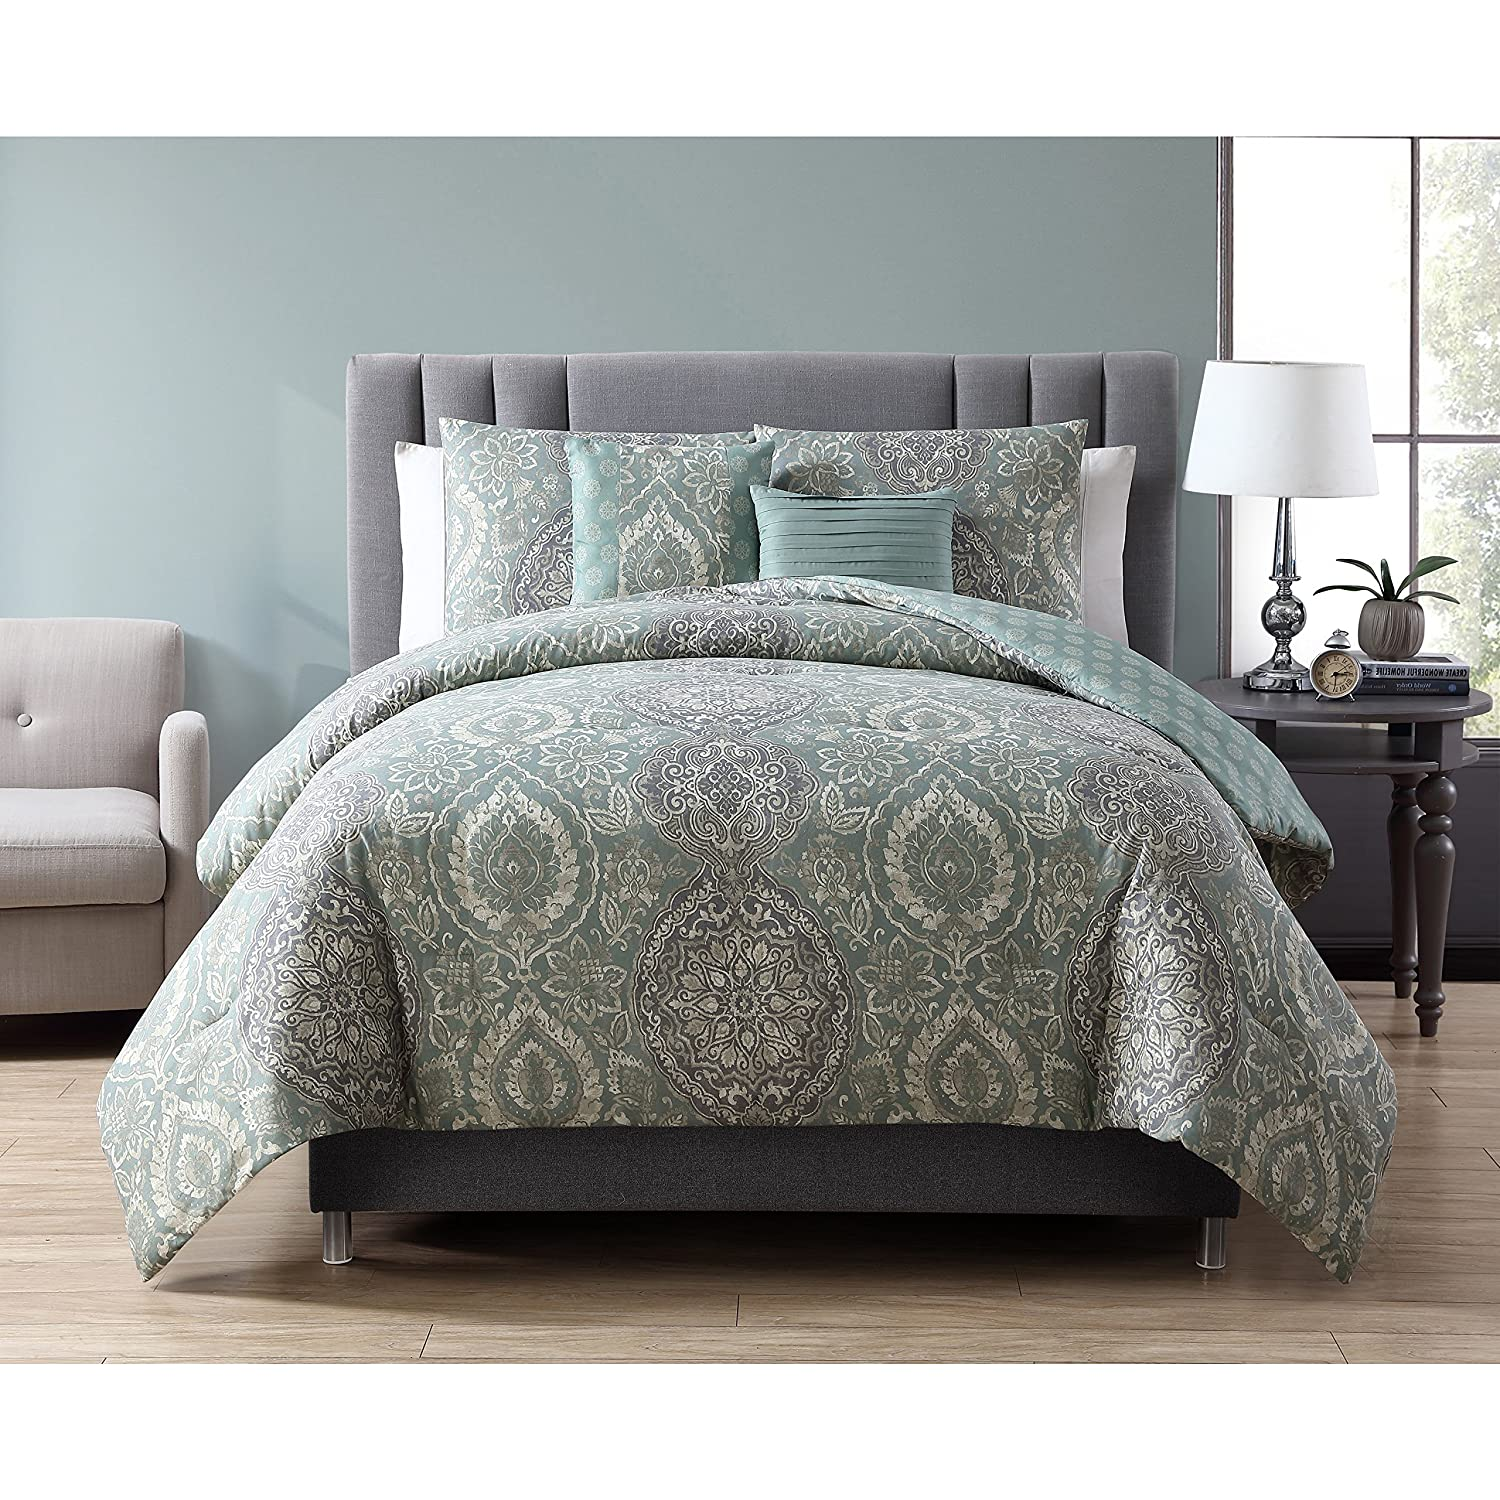 5 Piece Sage Green Gray Paisley Pattern Comforter Queen Full Set, Light Grey Green Floral Bohemian Medallion Shabby Chic, Soft Reversible Mandala Adult Bedding Master Bedroom Contemporary, Polyester